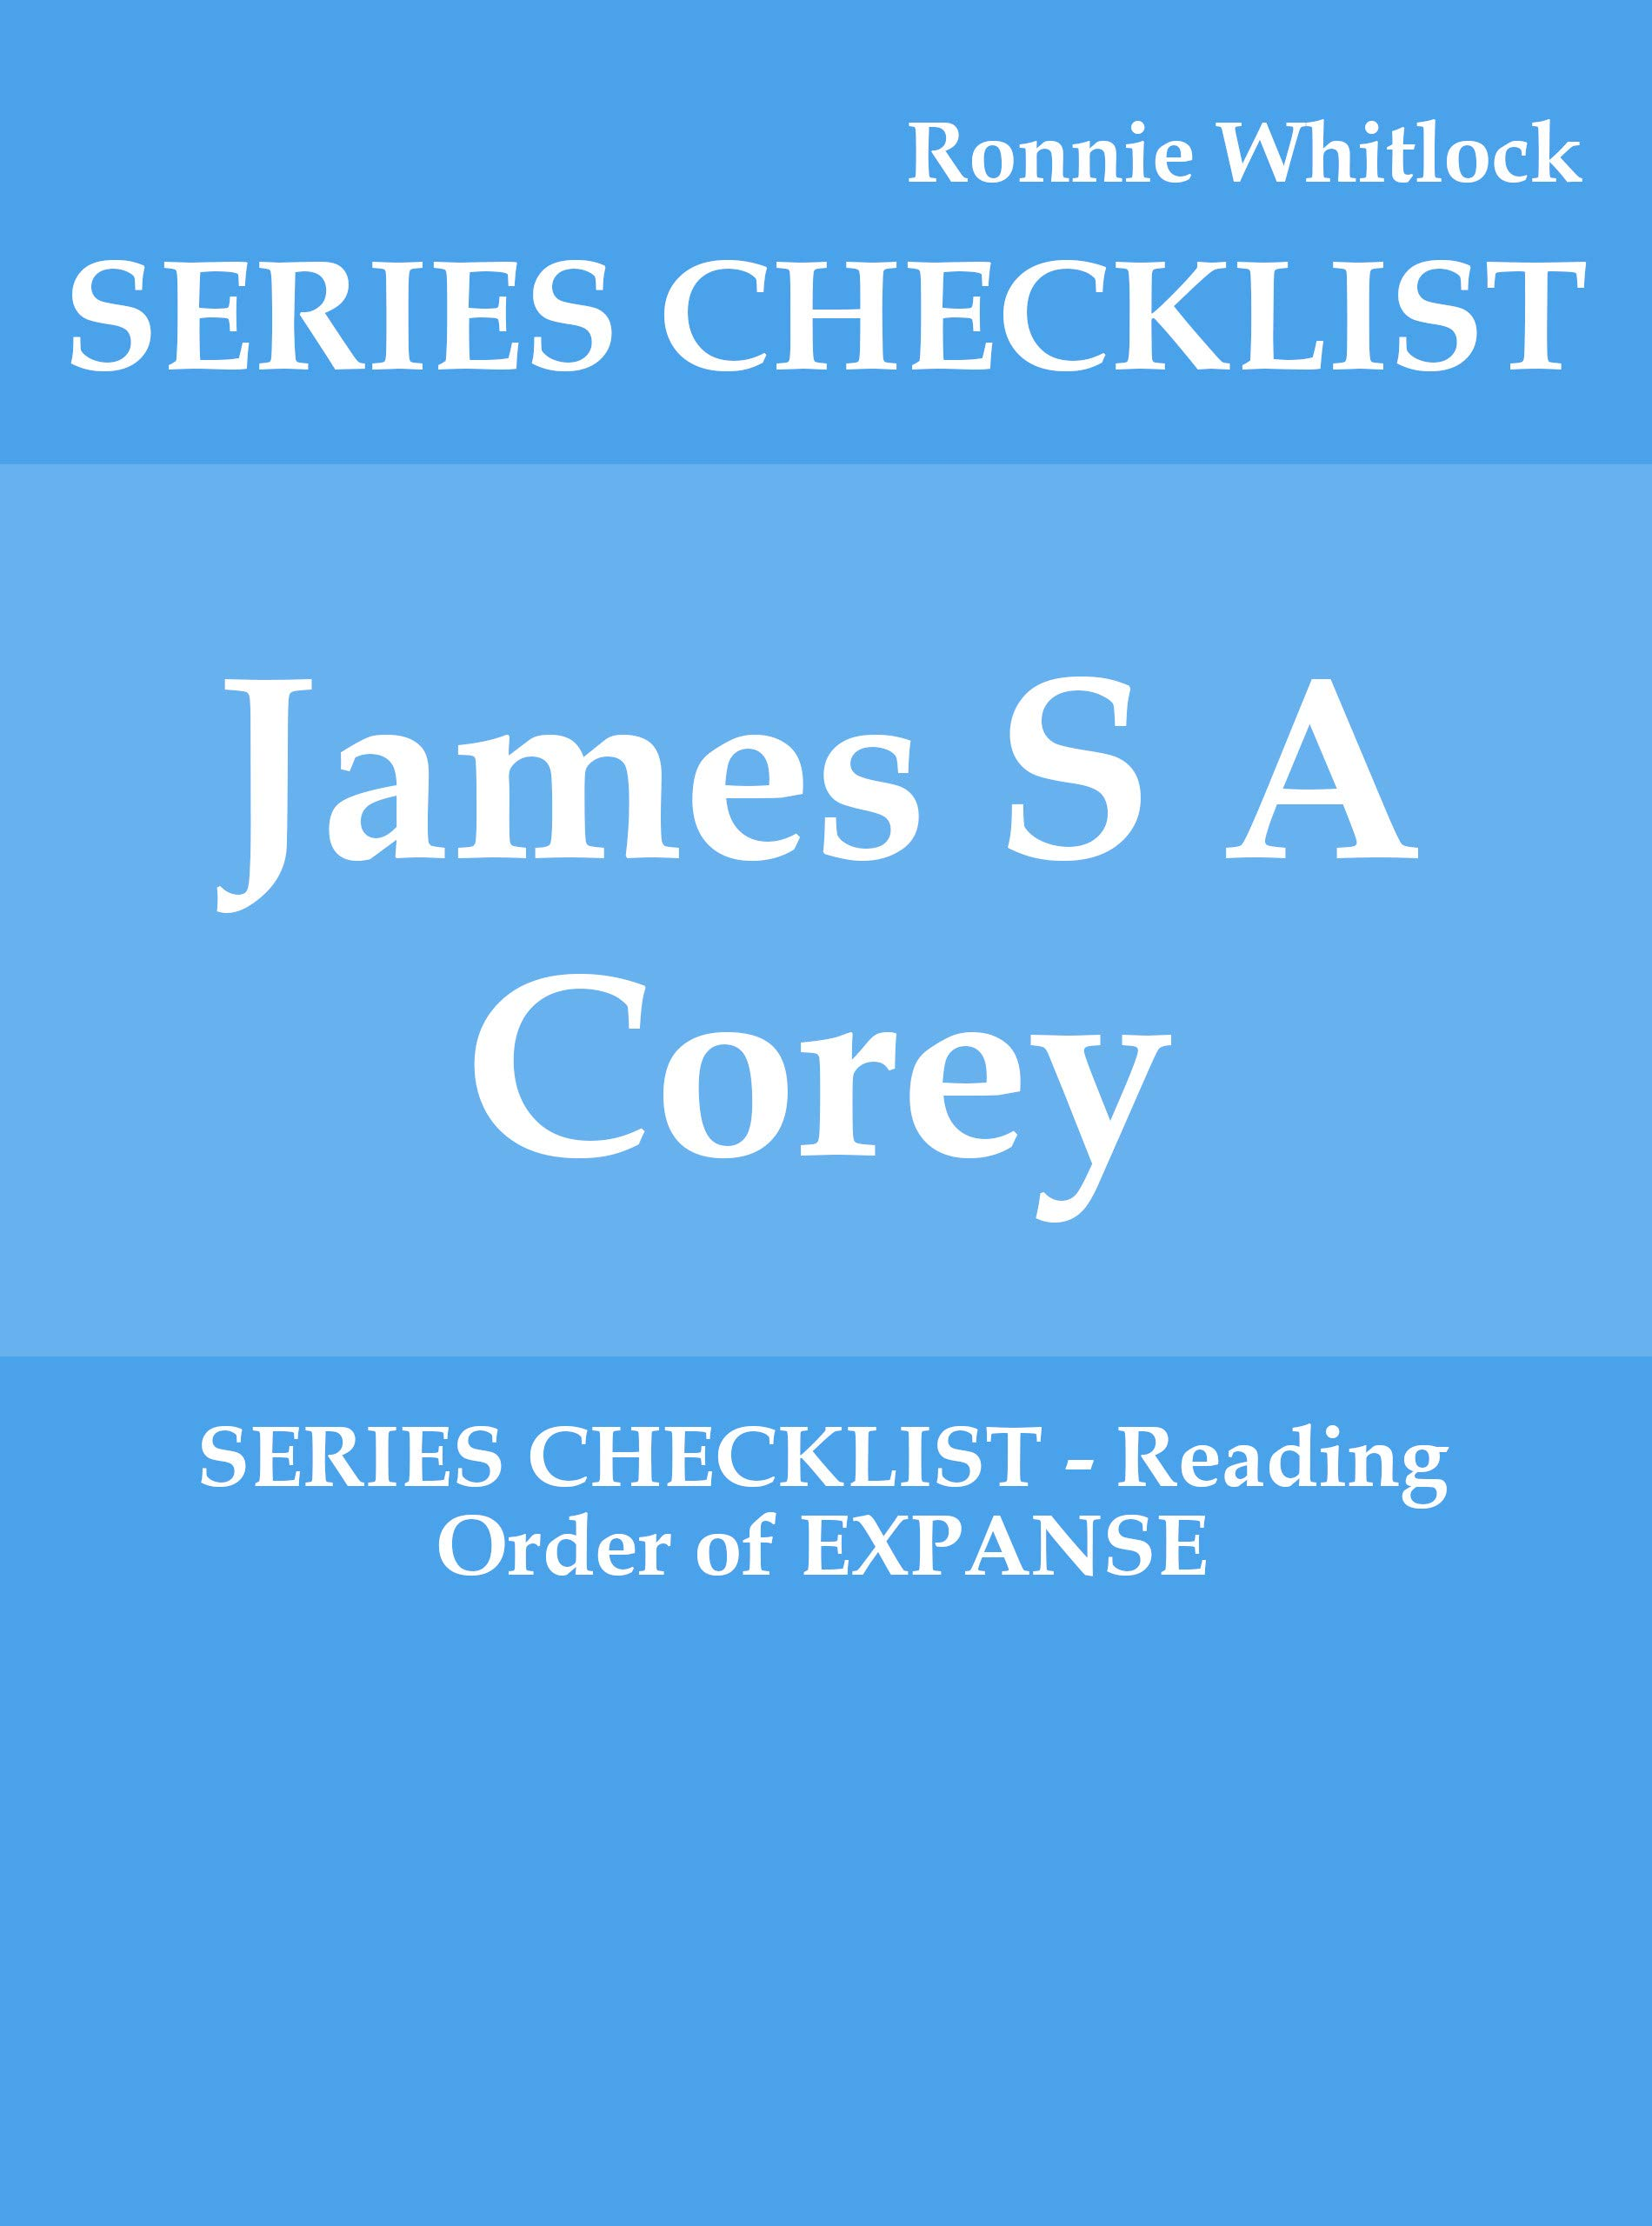 James S A Corey   SERIES CHECKLIST   Reading Order Of EXPANSE  English Edition